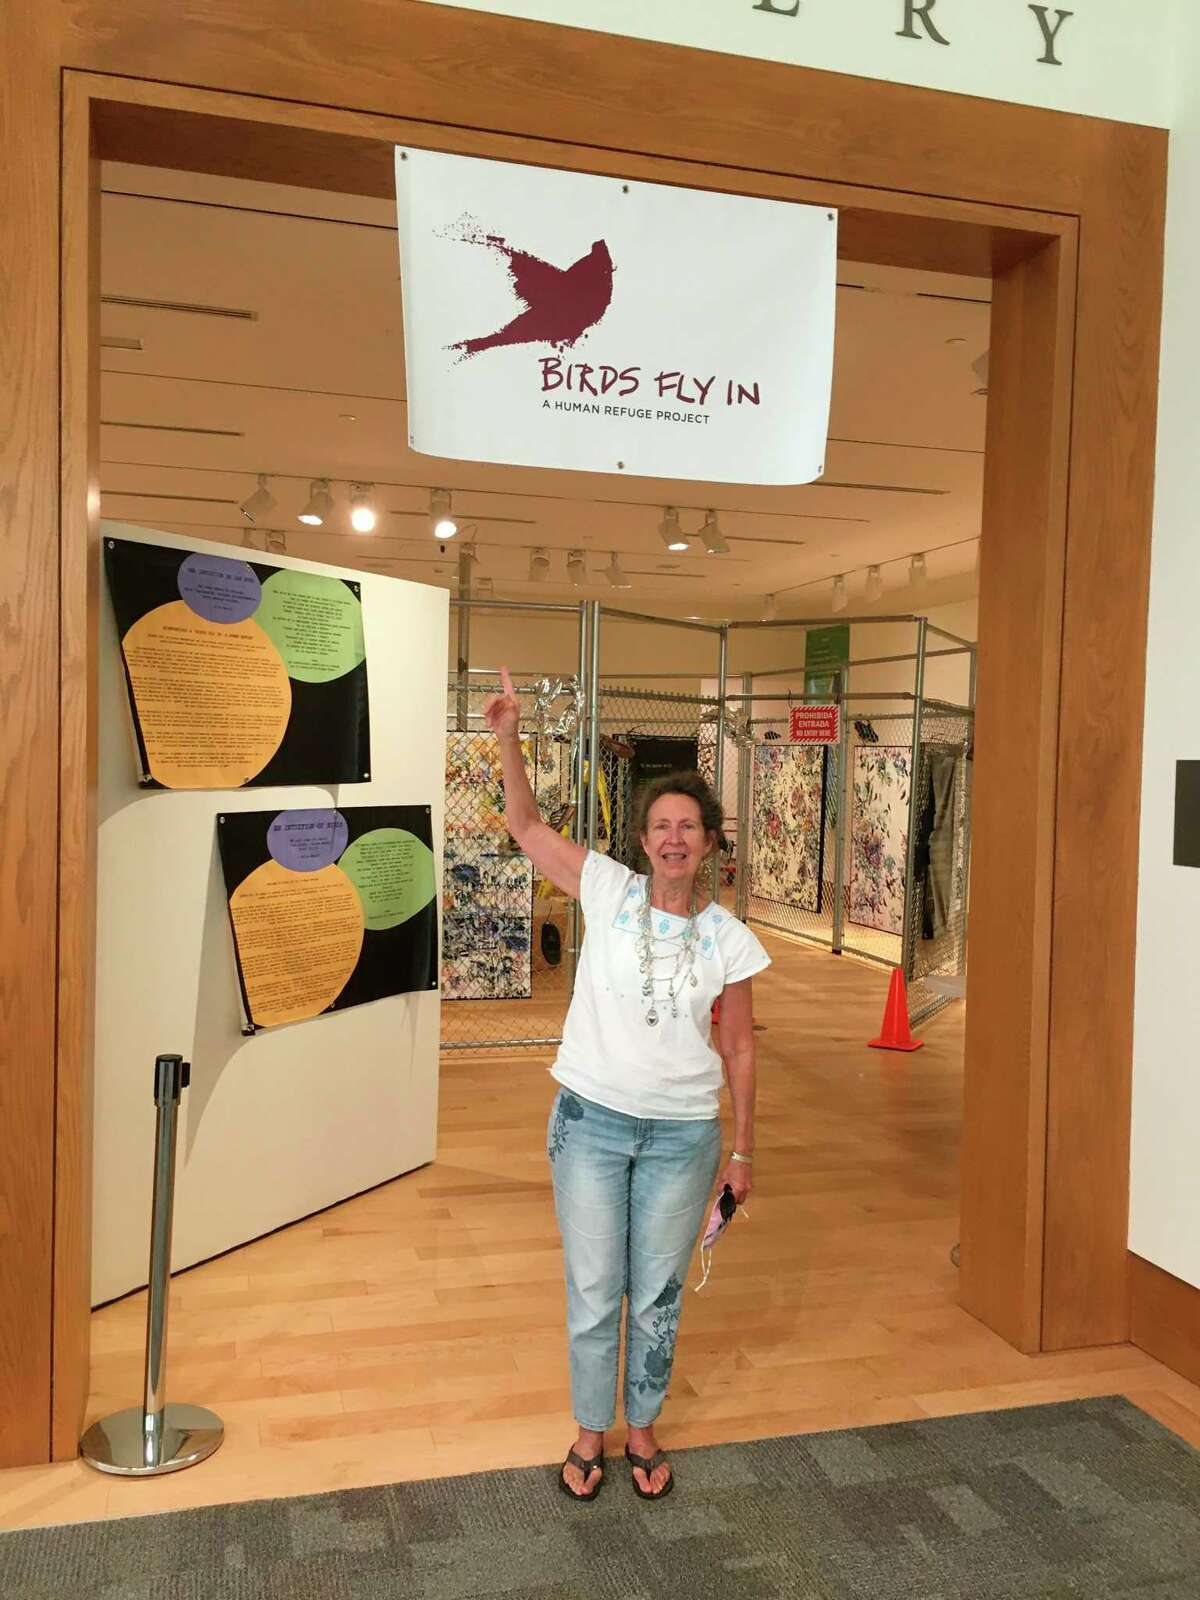 Ellie Harold's collaborative art project Birds Fly In: A Human Refuge, is on display at the Dennos Museum Center in Traverse City. (Courtesy Photo)